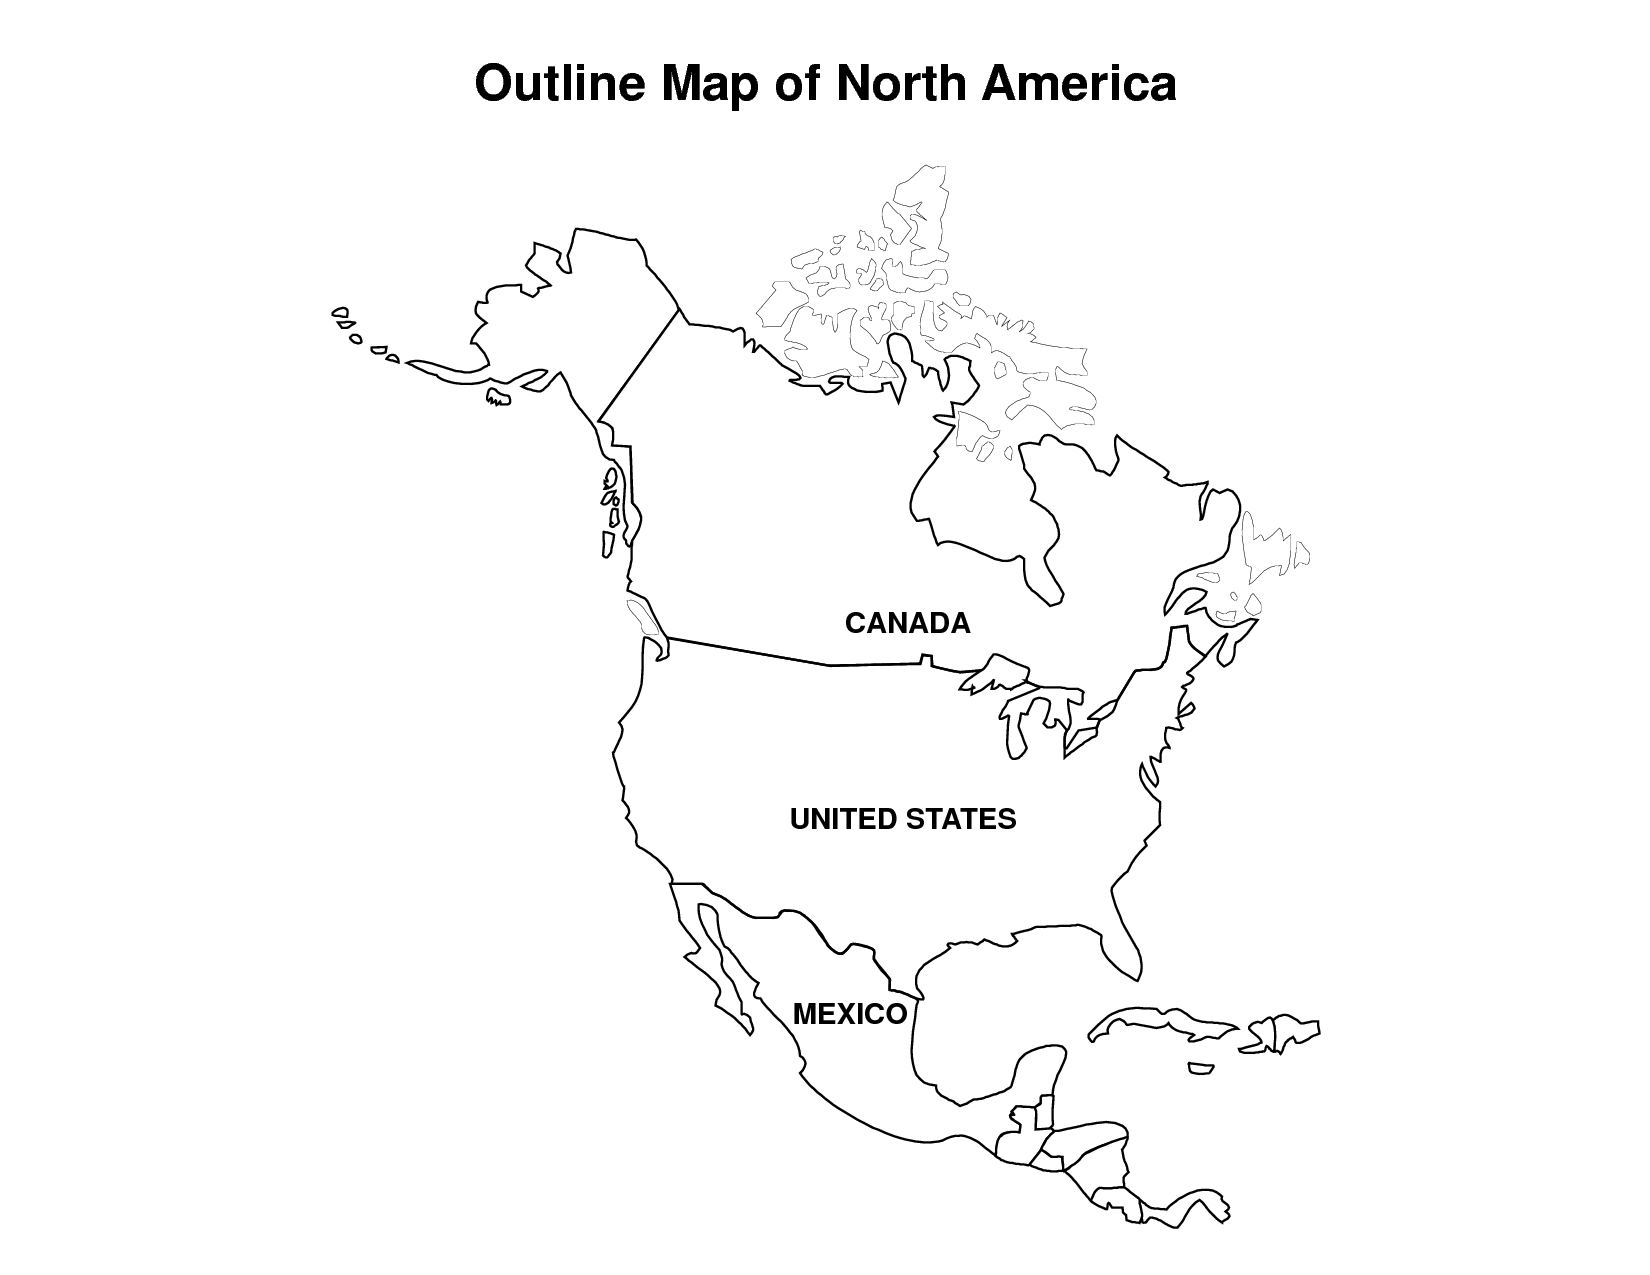 printable map of north america pic outline map of north america printable map of north america pic outline map of north america map drill